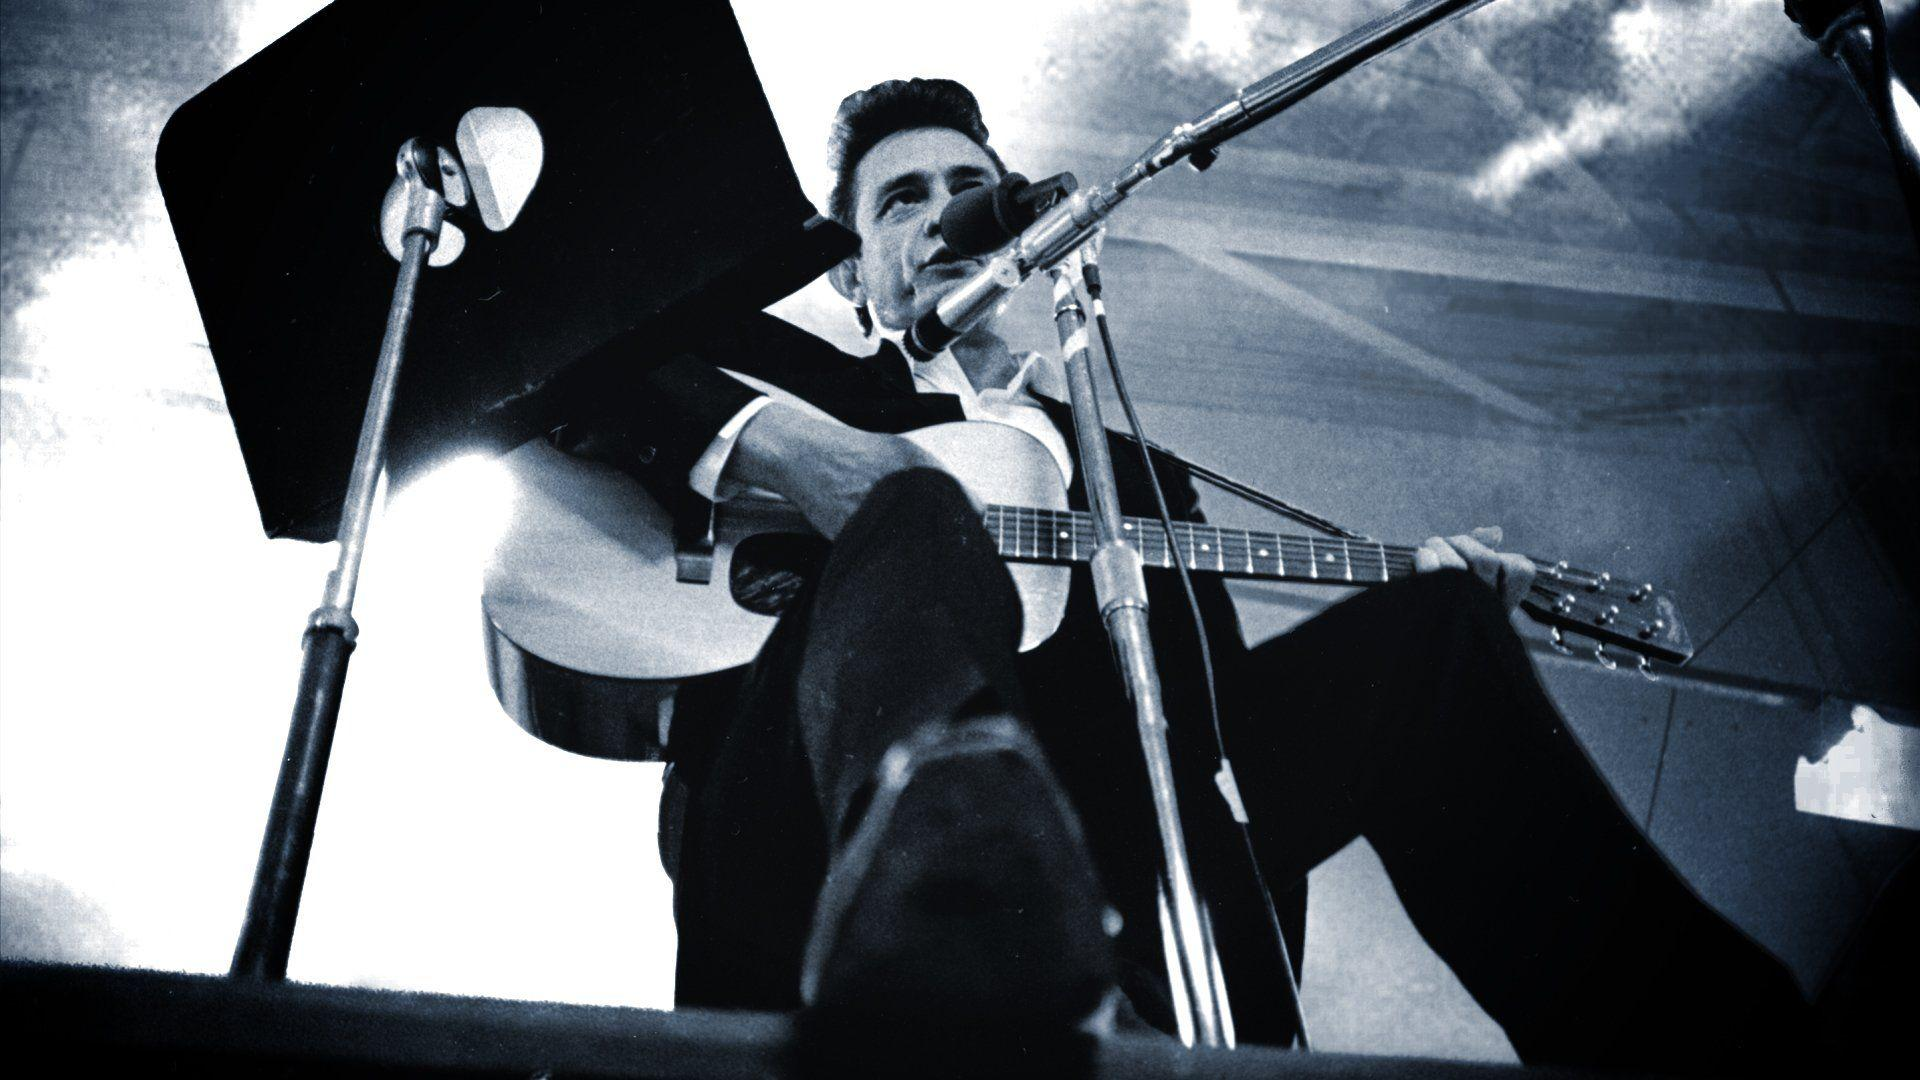 Johnny Cash Full HD Wallpaper and Background Image | 1920x1080 ...